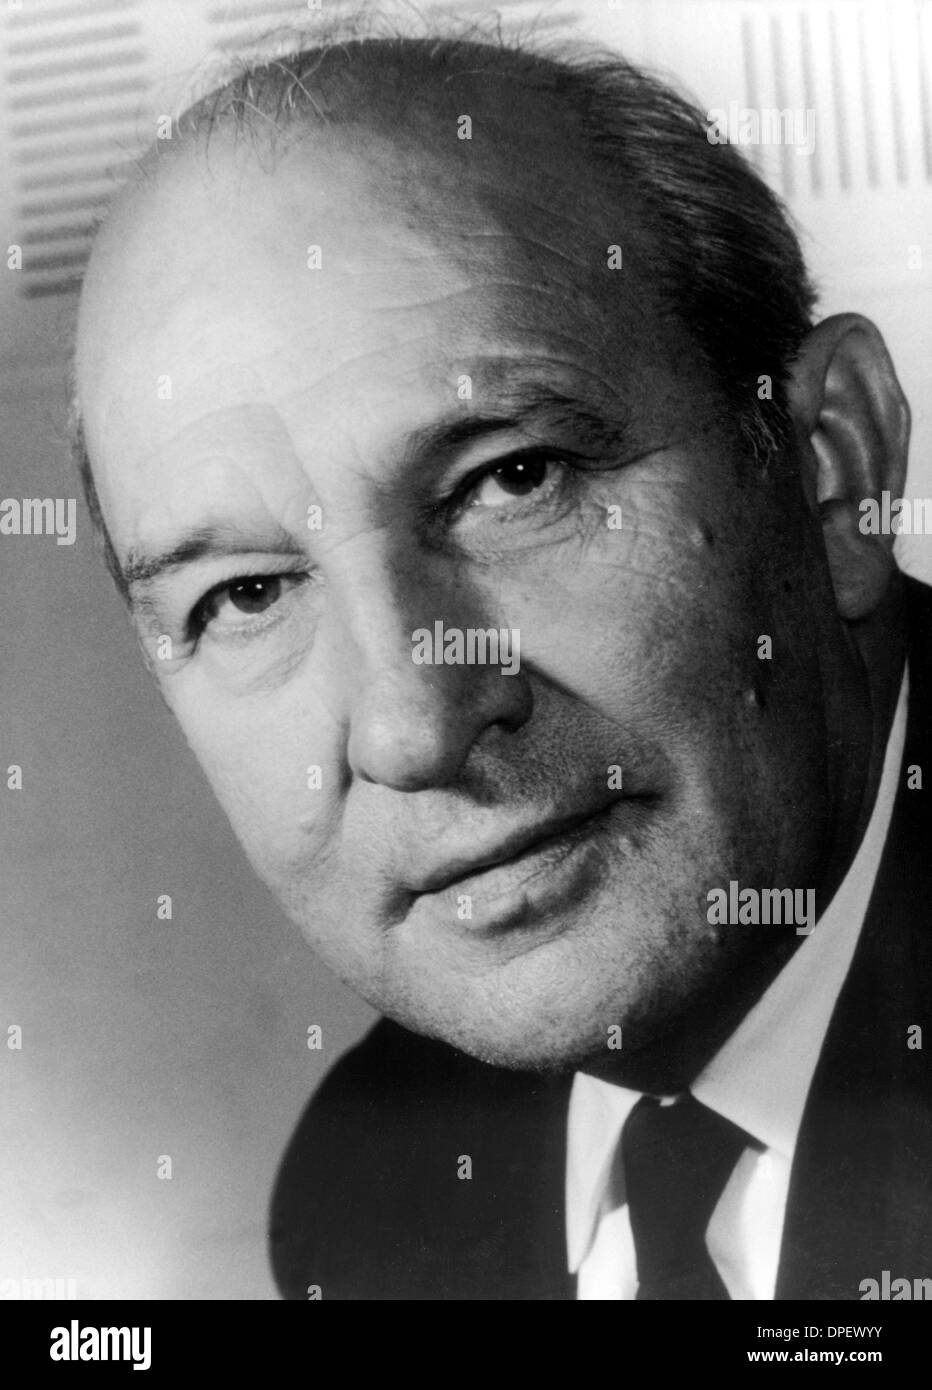 Sep 22, 2006; Berlin, GERMANY; One of the most famous exiles of his time, WILLIAM DIETERLE was a stage and film - Stock Image